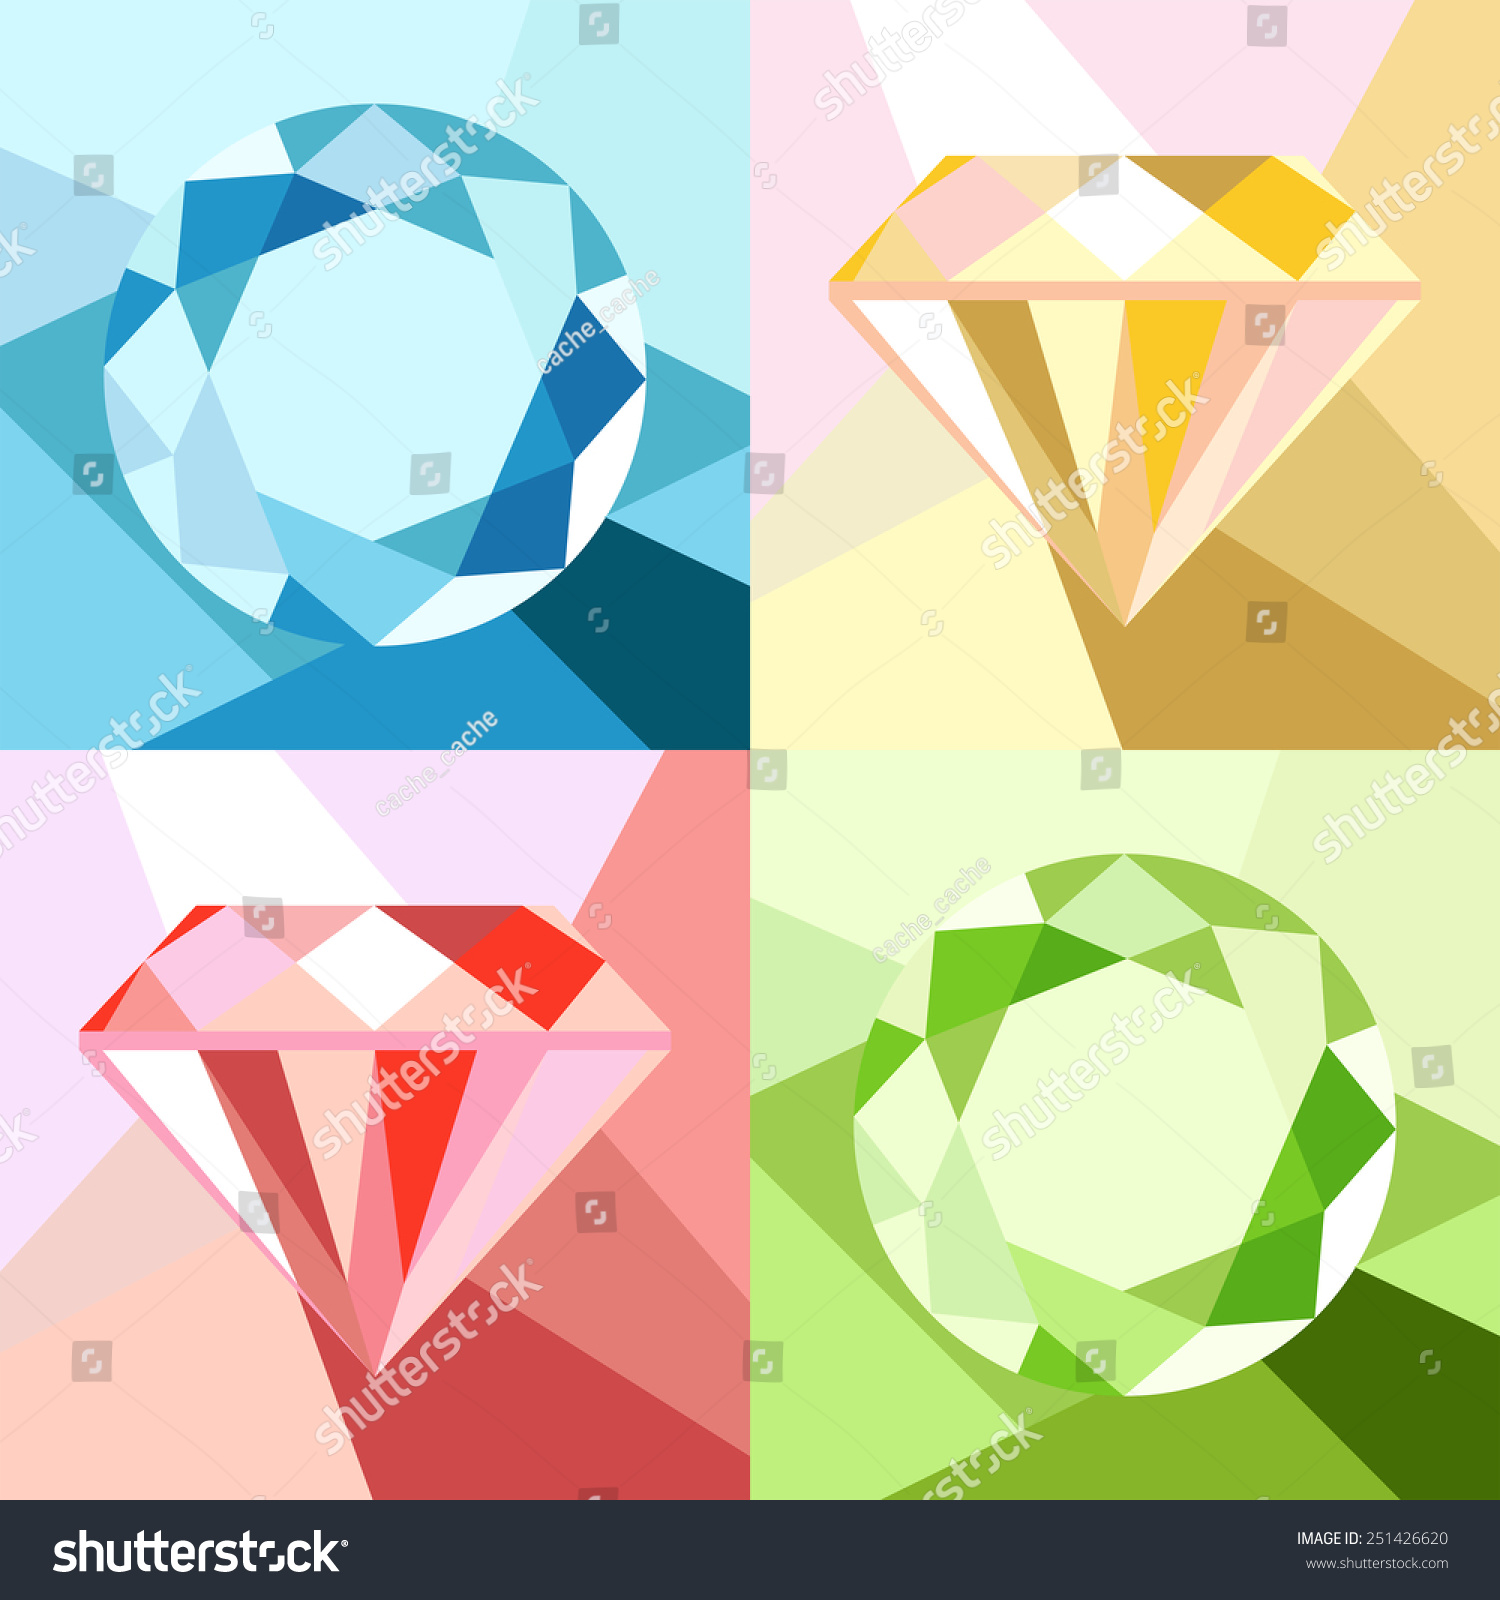 polygon diy google geometric pattern search pin pinterest diamond patterns art